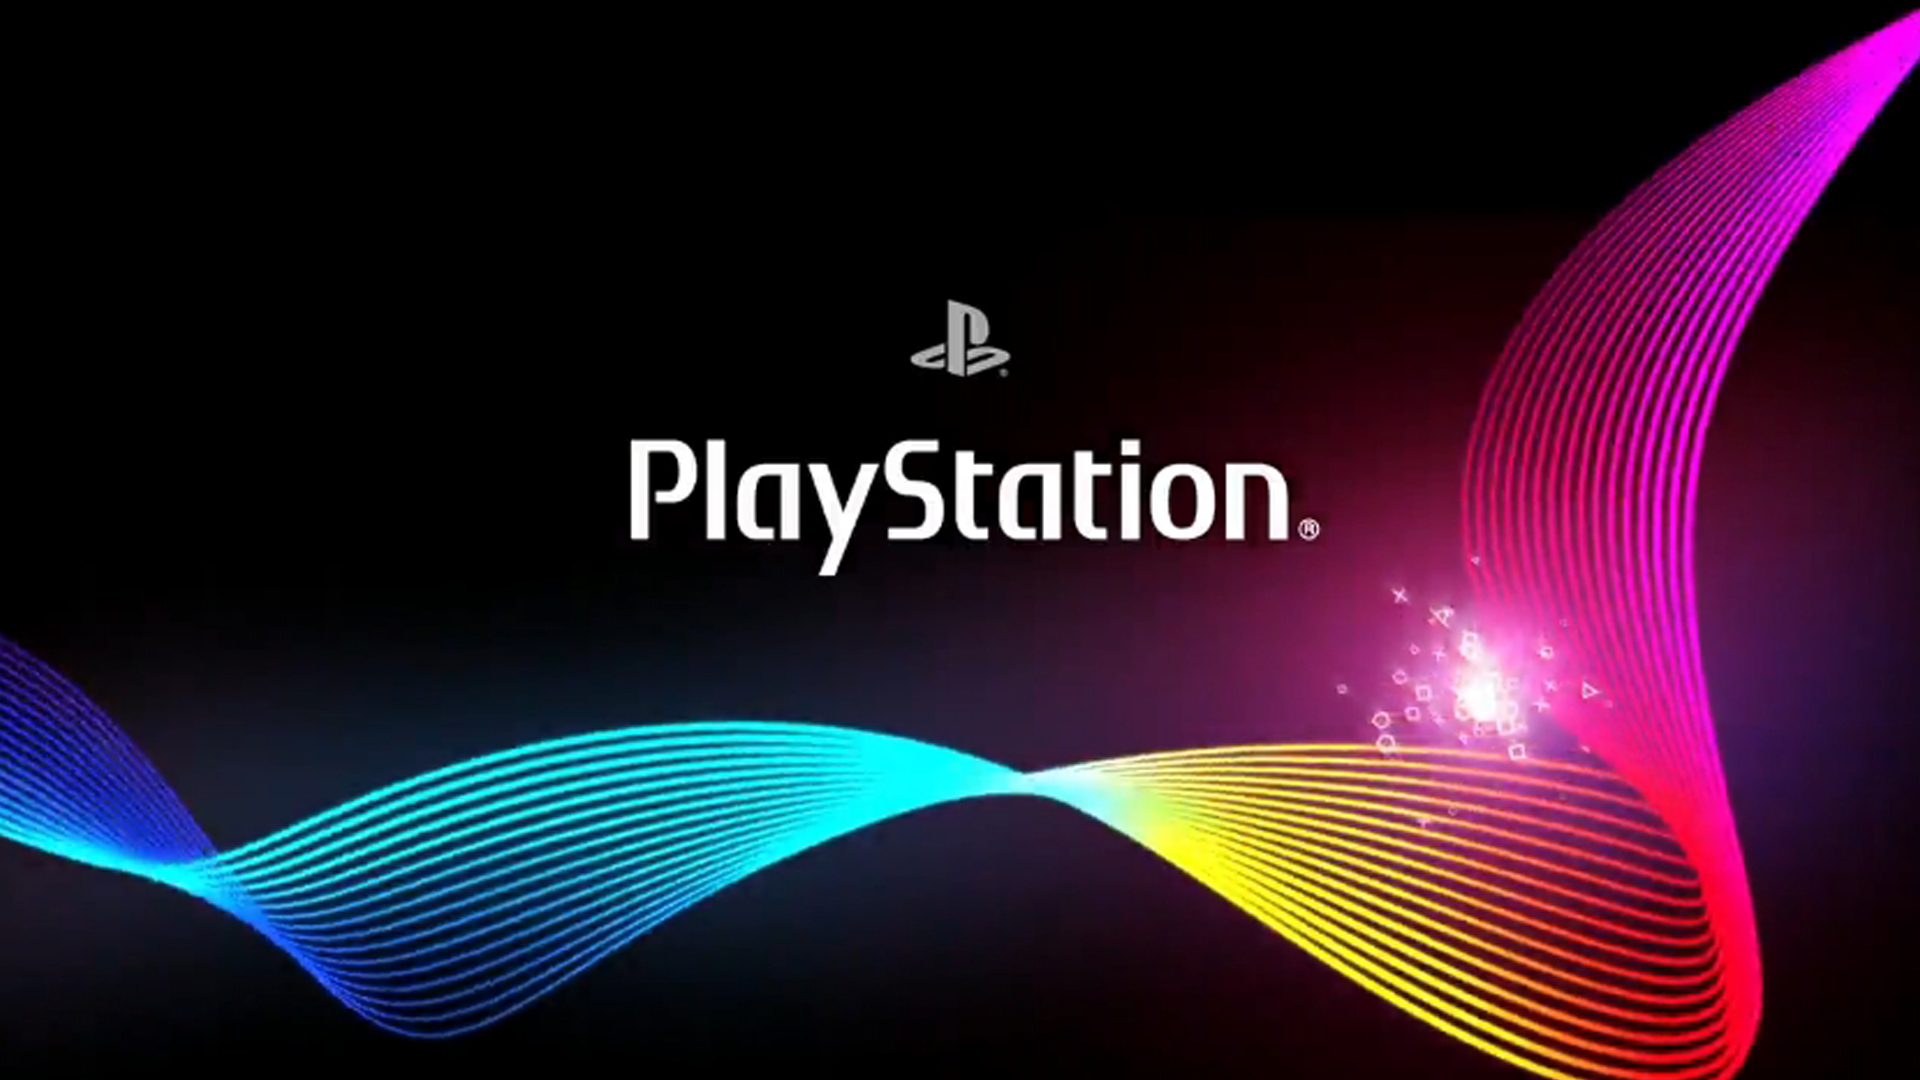 Ps3 Wallpapers Hd Wallpapersafari